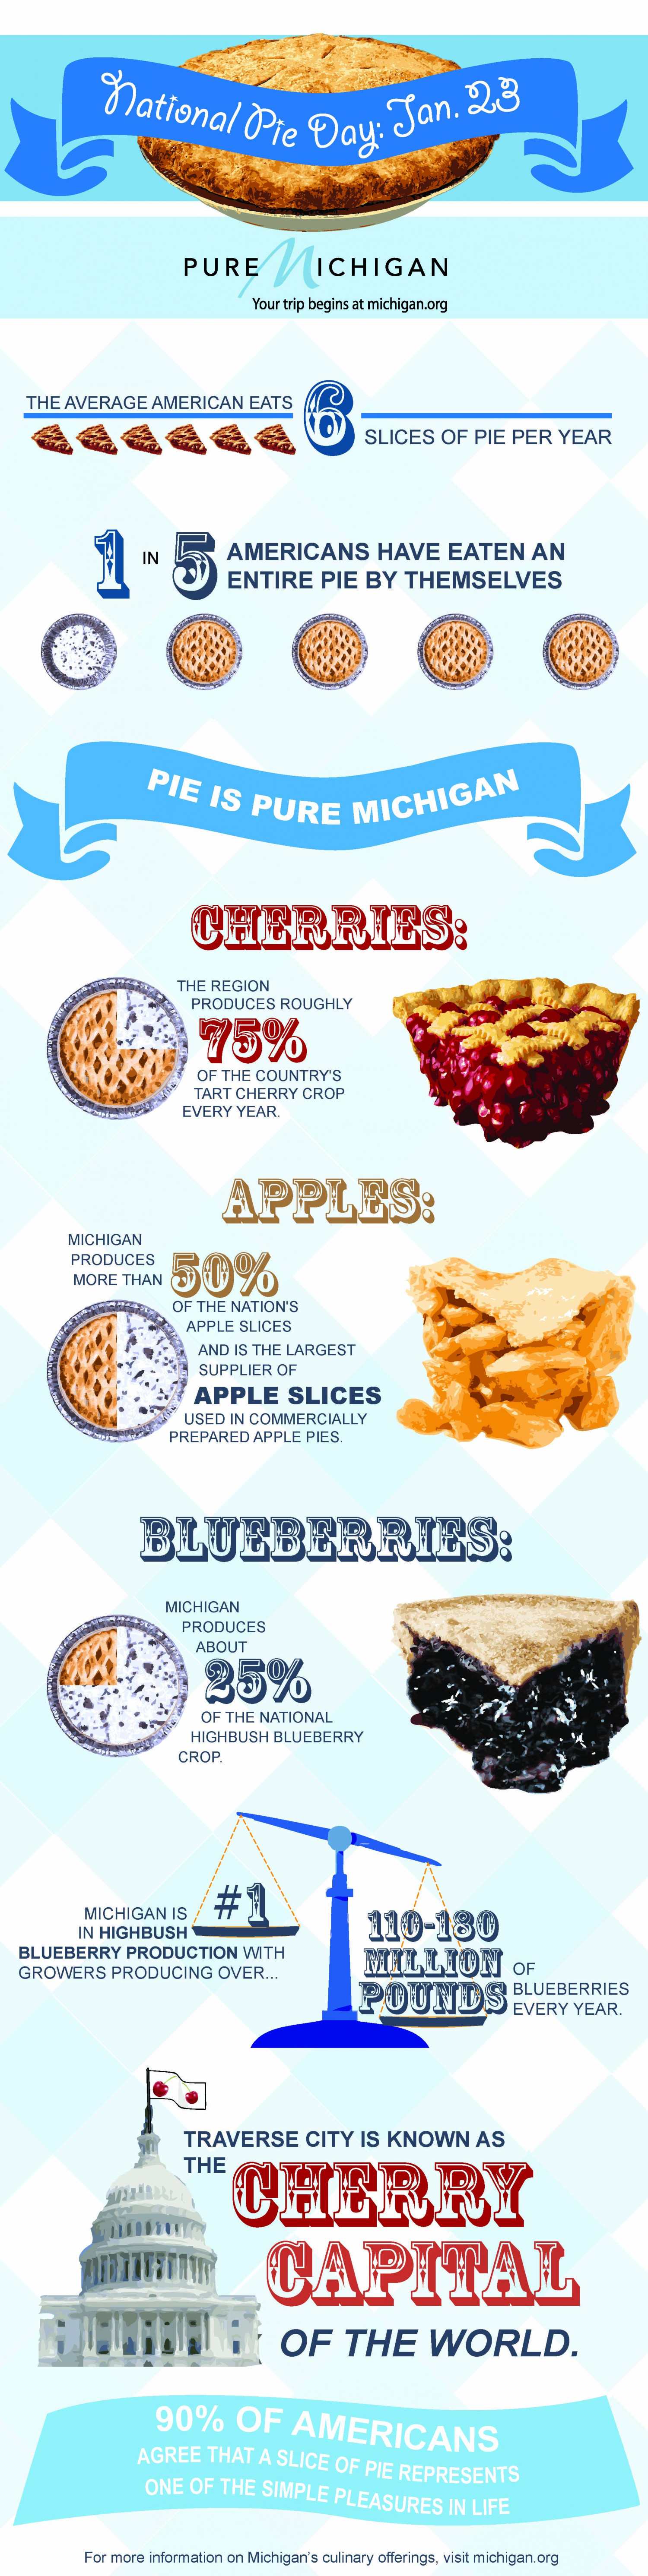 Pure Michigan Celebrates National Pie Day Infographic